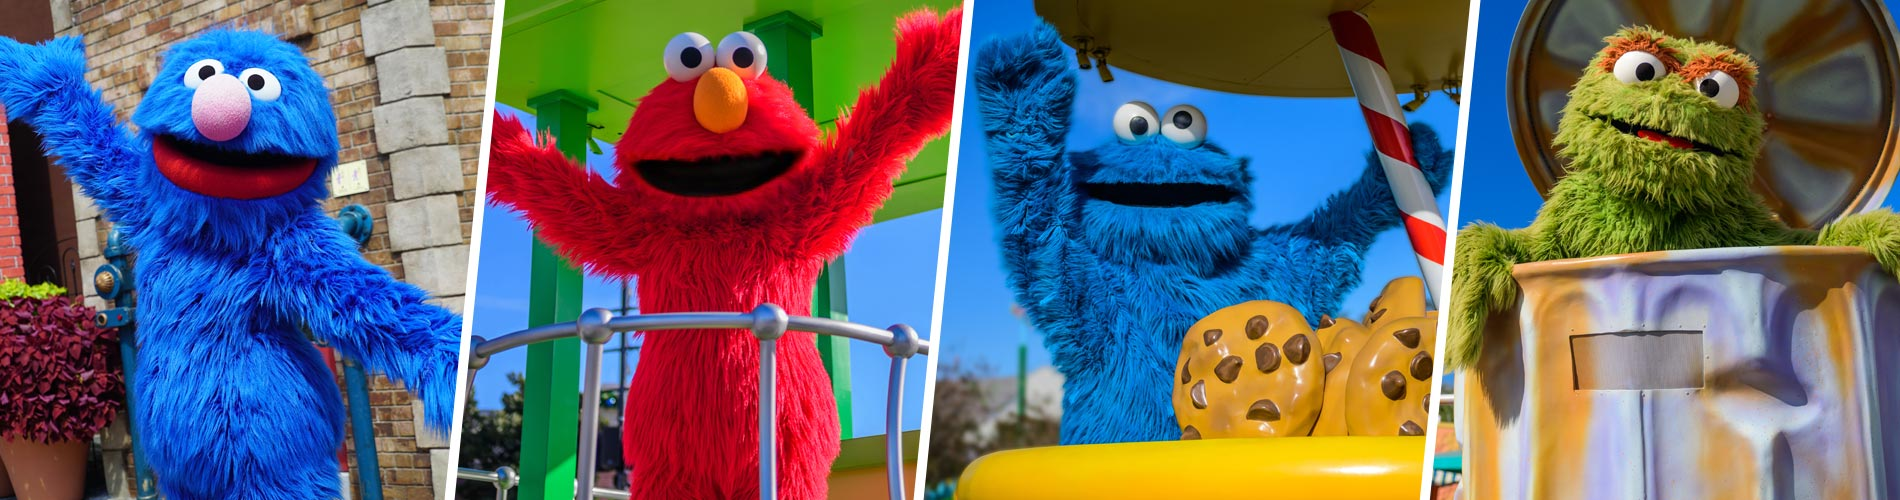 Meet and greets with your Sesame Street friends at Sesame Place San Diego